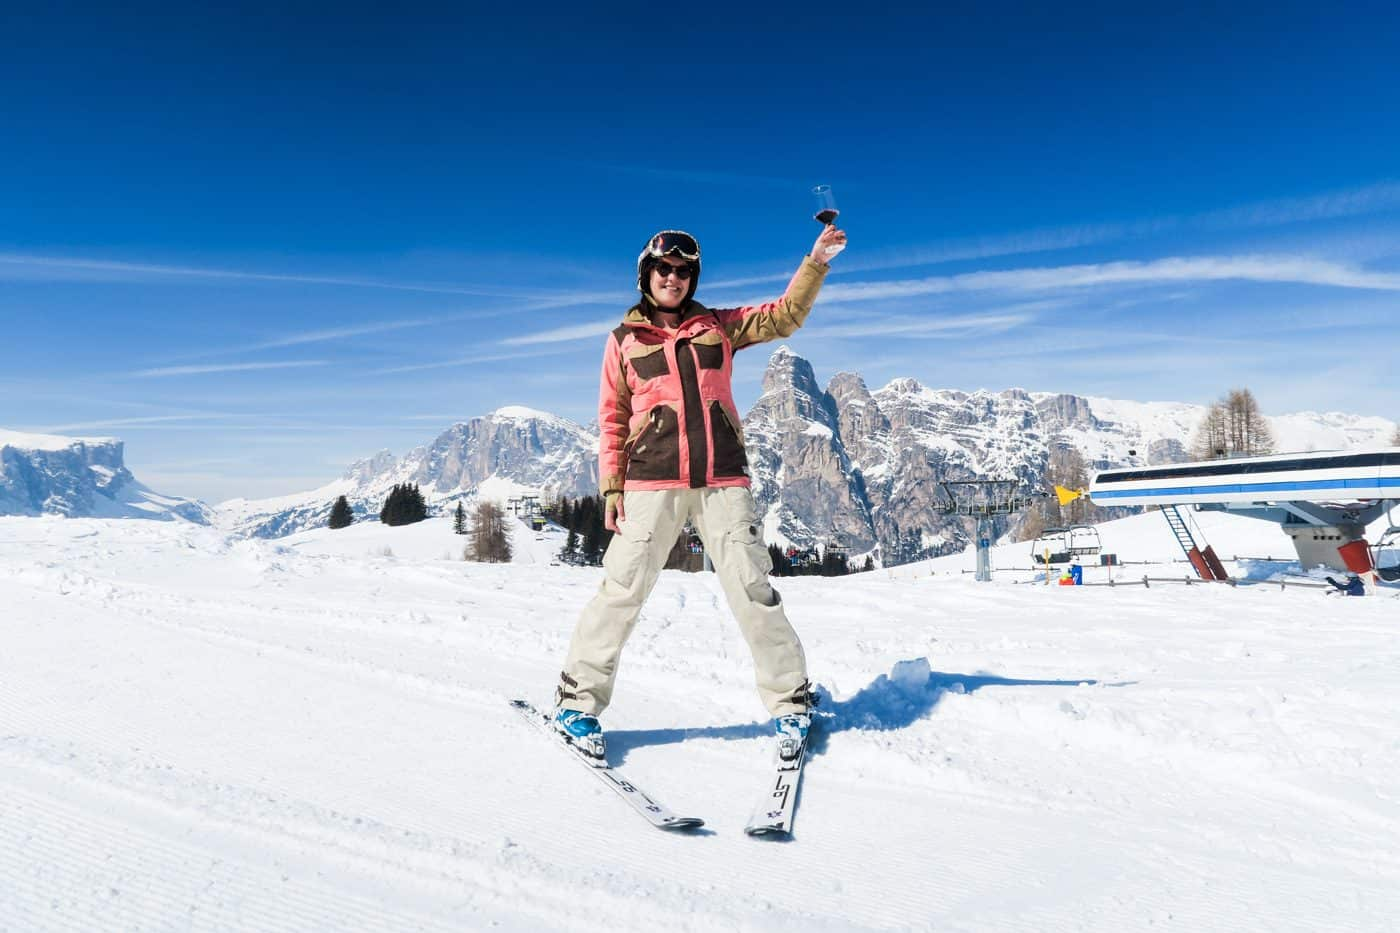 De beste wintersport ooit: Wine Ski Safari in Sud-Tirol!